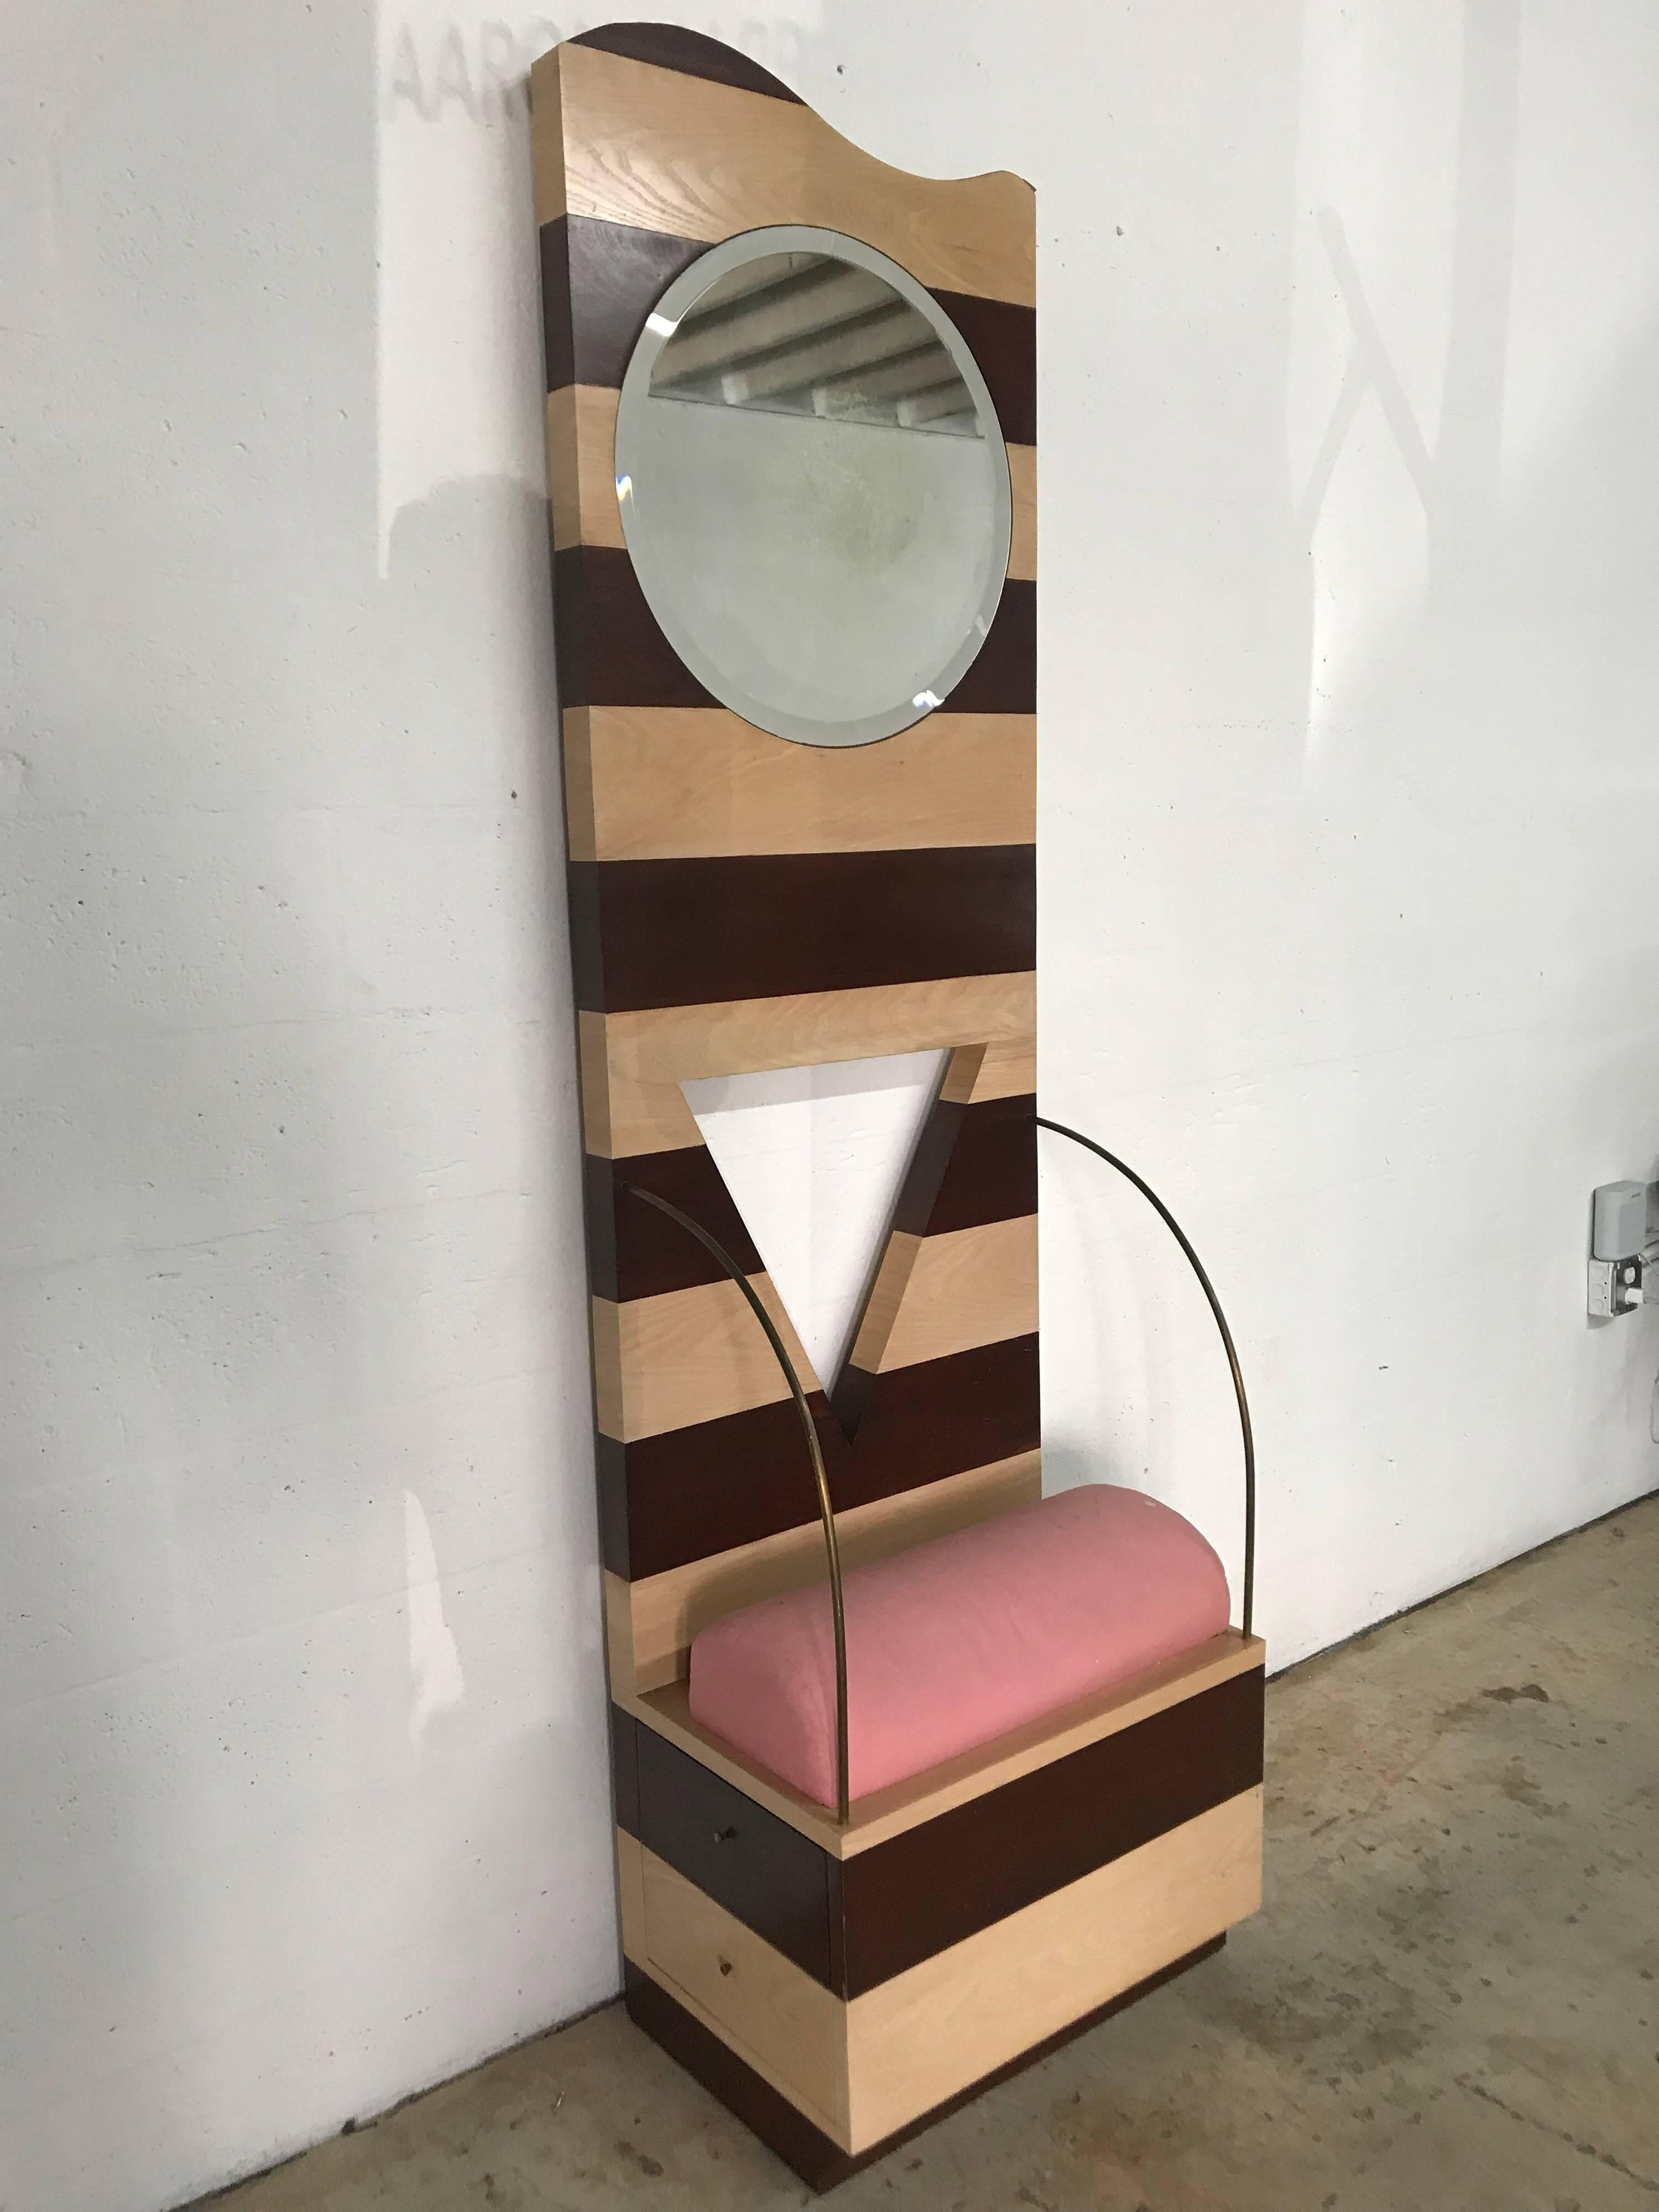 Post Modern Throne Or Entry Chair With Mirror For Sale At 1stdibs